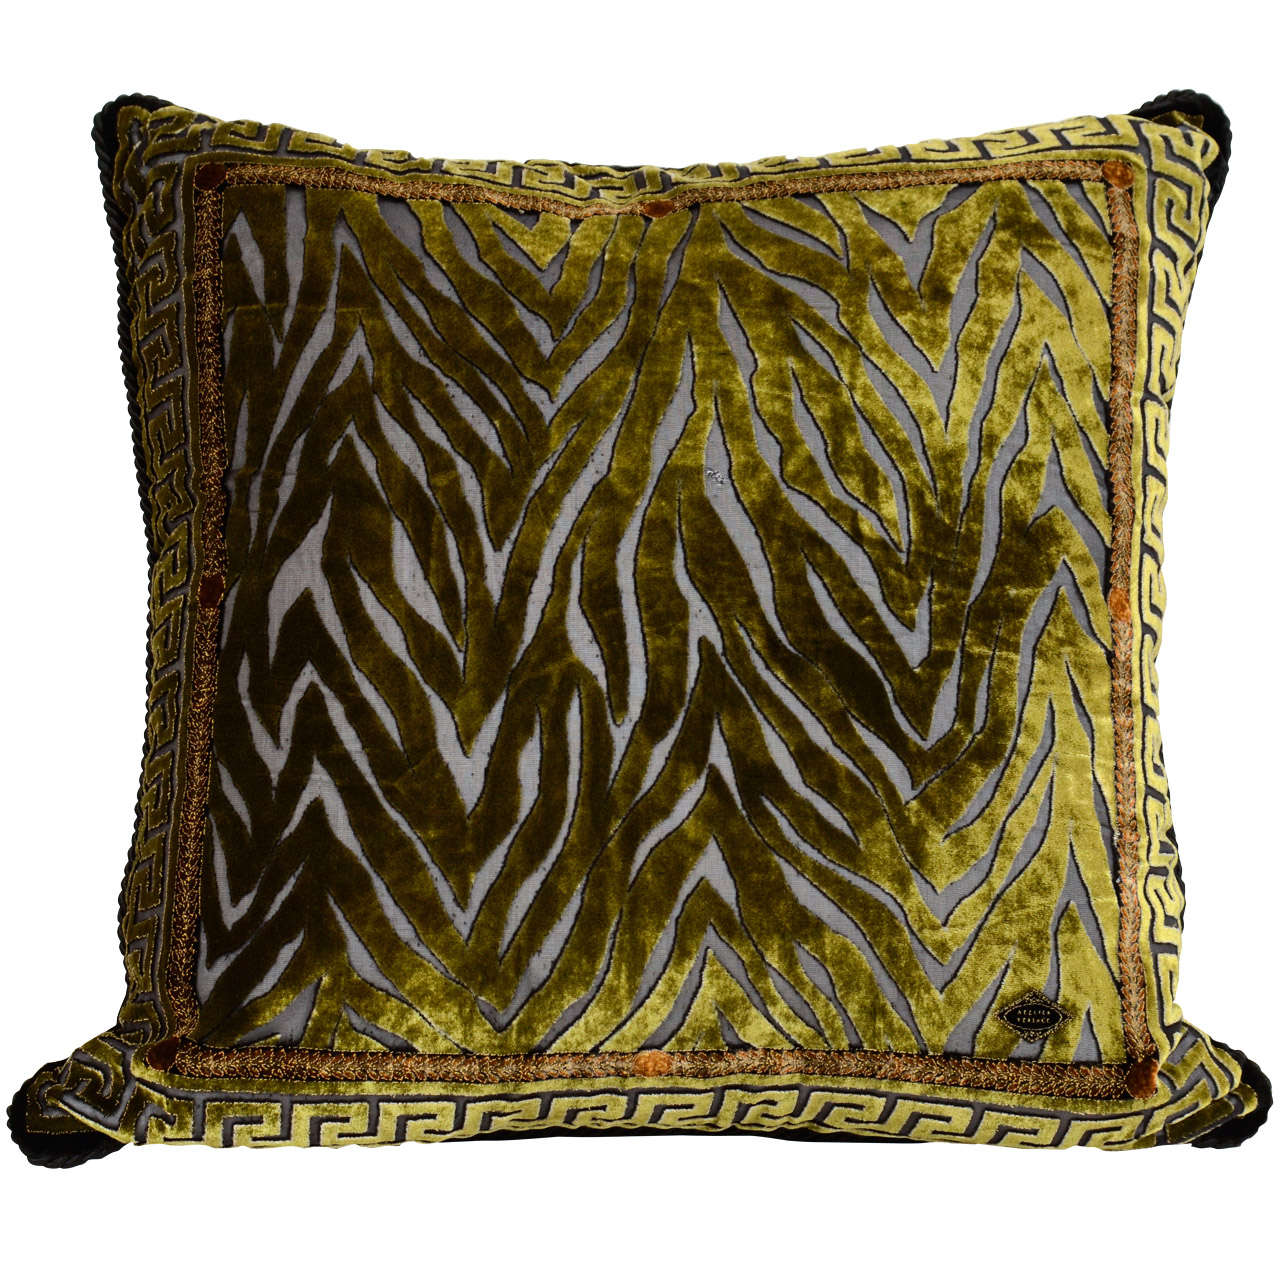 Vintage Atelier Versace Moss Green Velvet Pillow with Exotic Print at 1stdibs